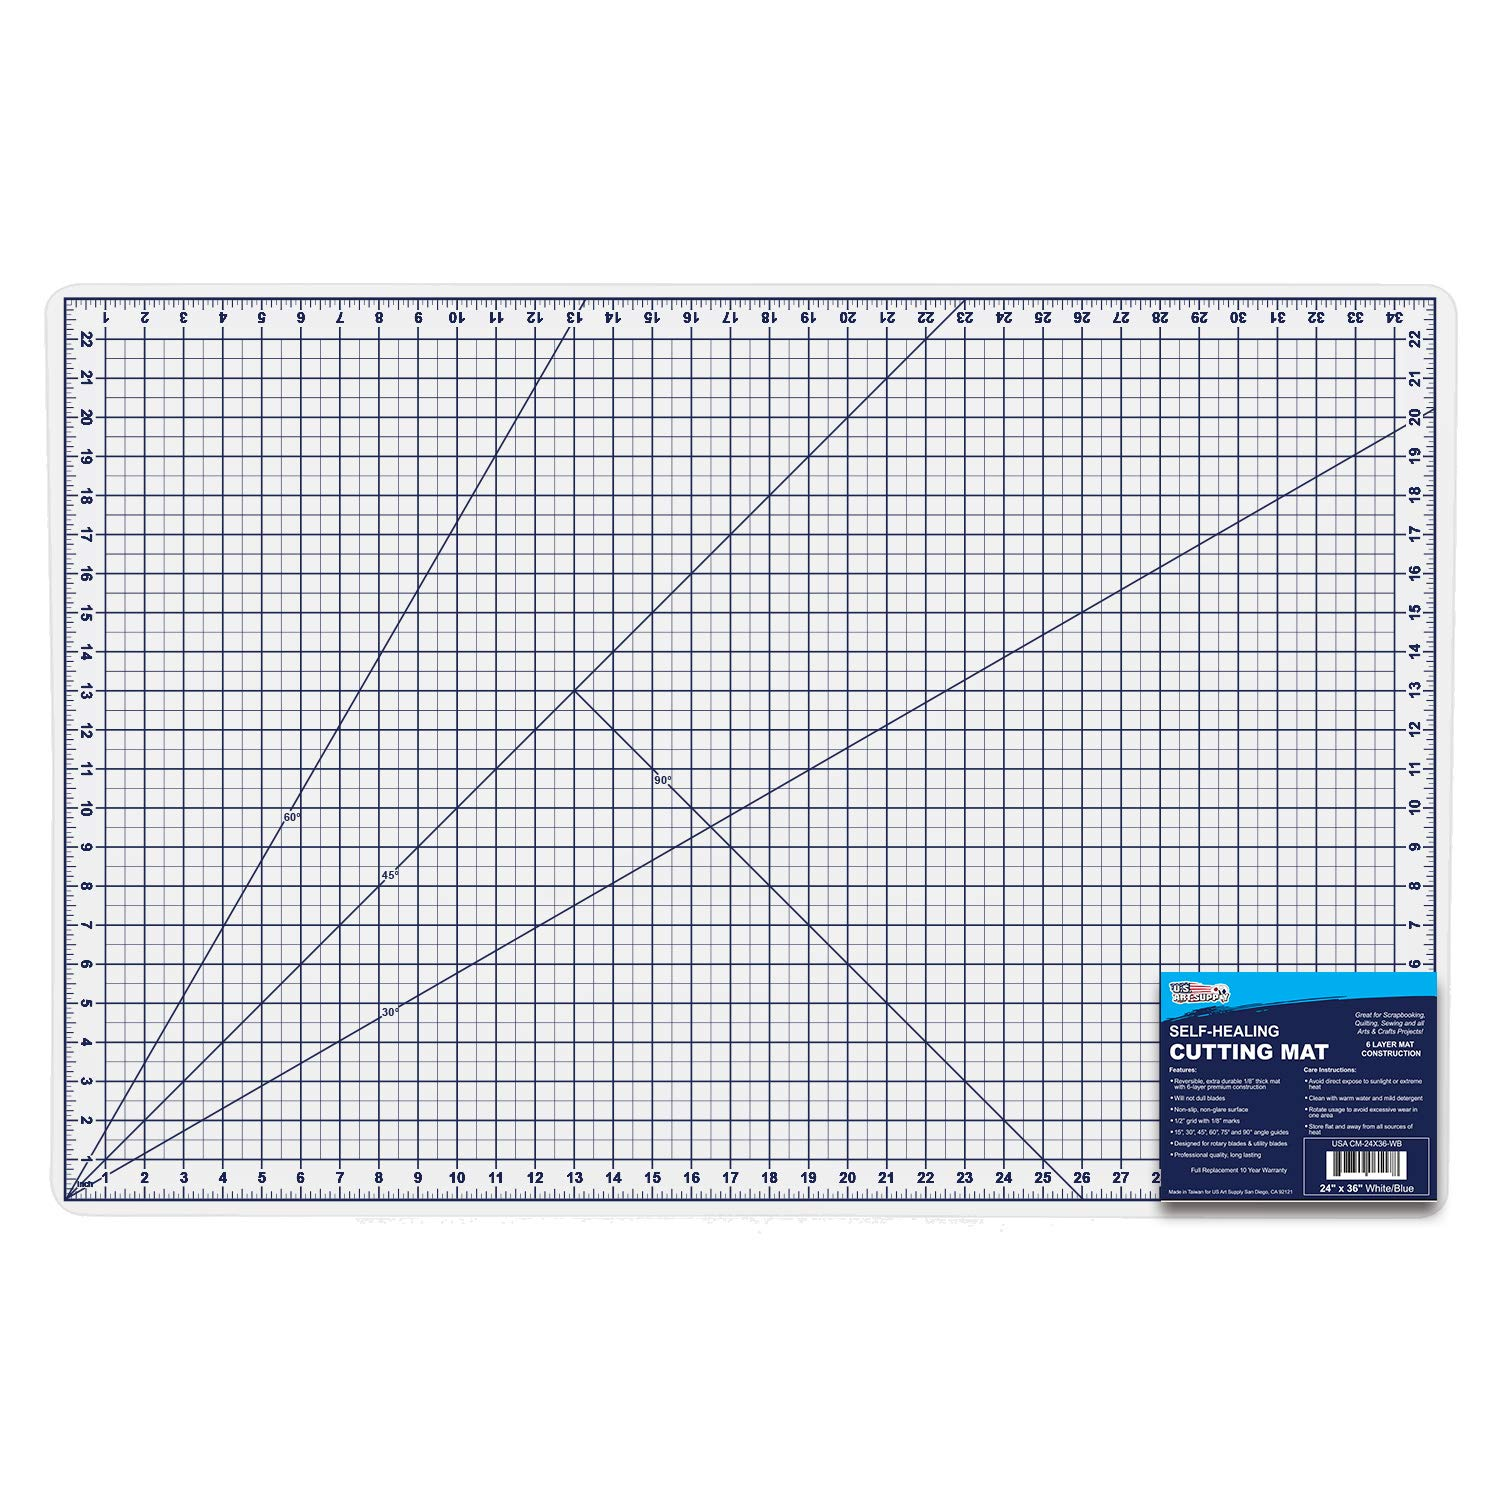 U.S. Art Supply 24'' x 36'' WHITE/BLUE High Contrast Professional Self Healing 6-Layer Double Sided Durable Non-Slip PVC Cutting Mat Great for Scrapbooking, Quilting, Sewing and all Arts & Crafts Projects